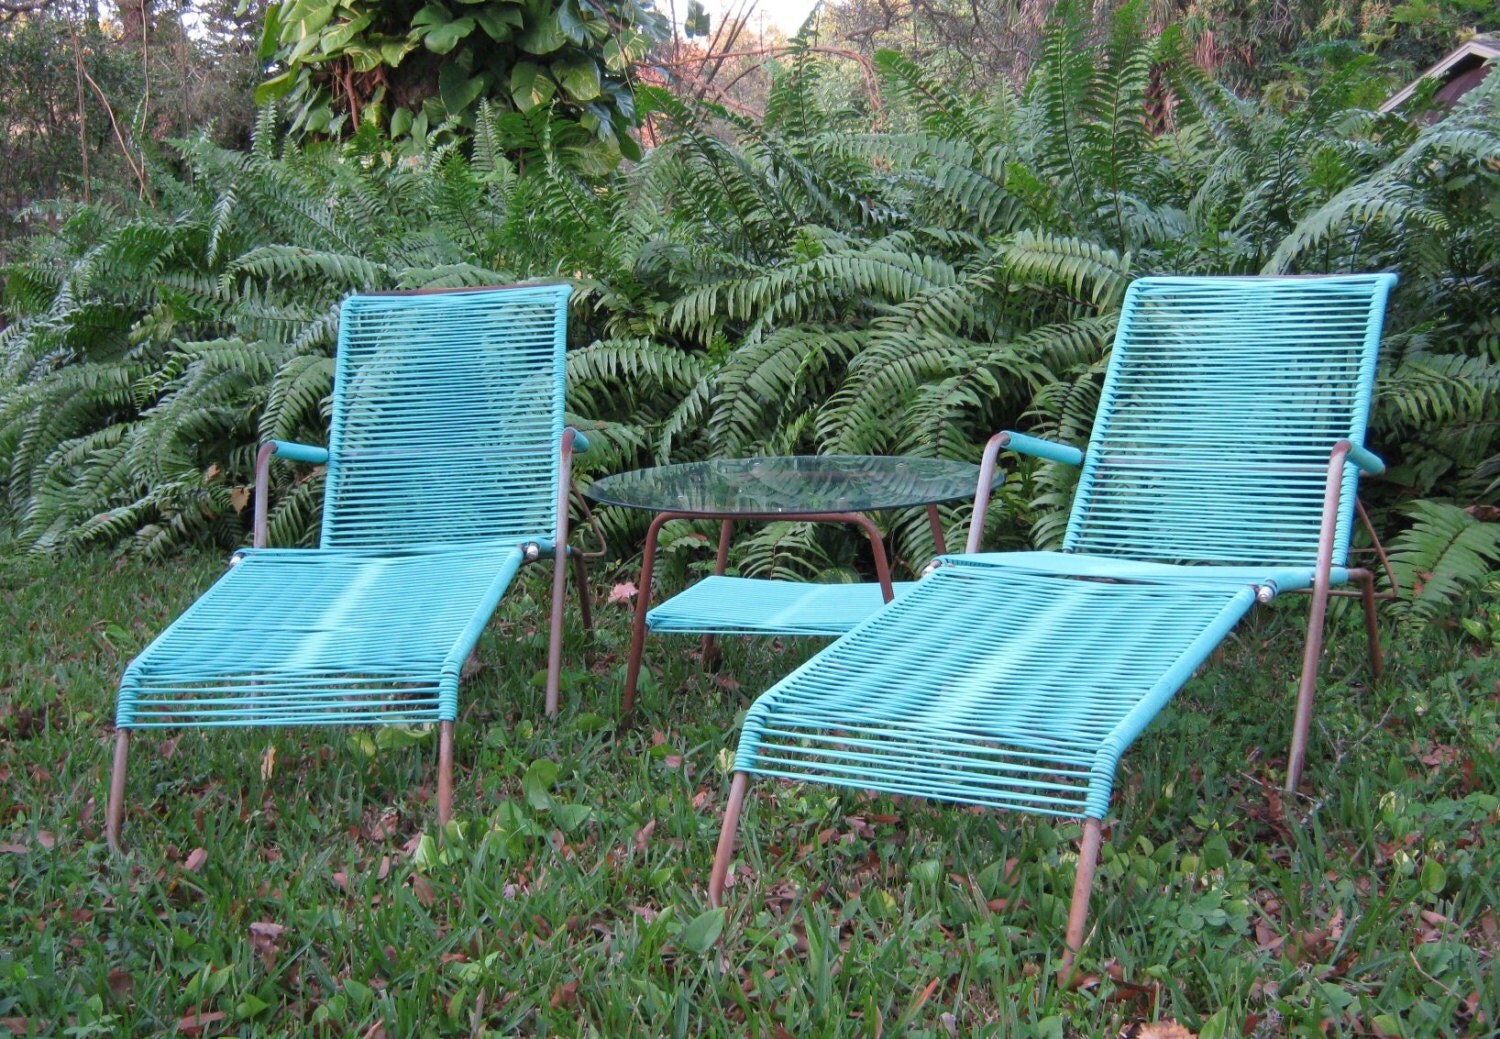 turquoise patio chairs tiffany blue chair covers for sale amazing brady bunch era lawn furniture brilliant